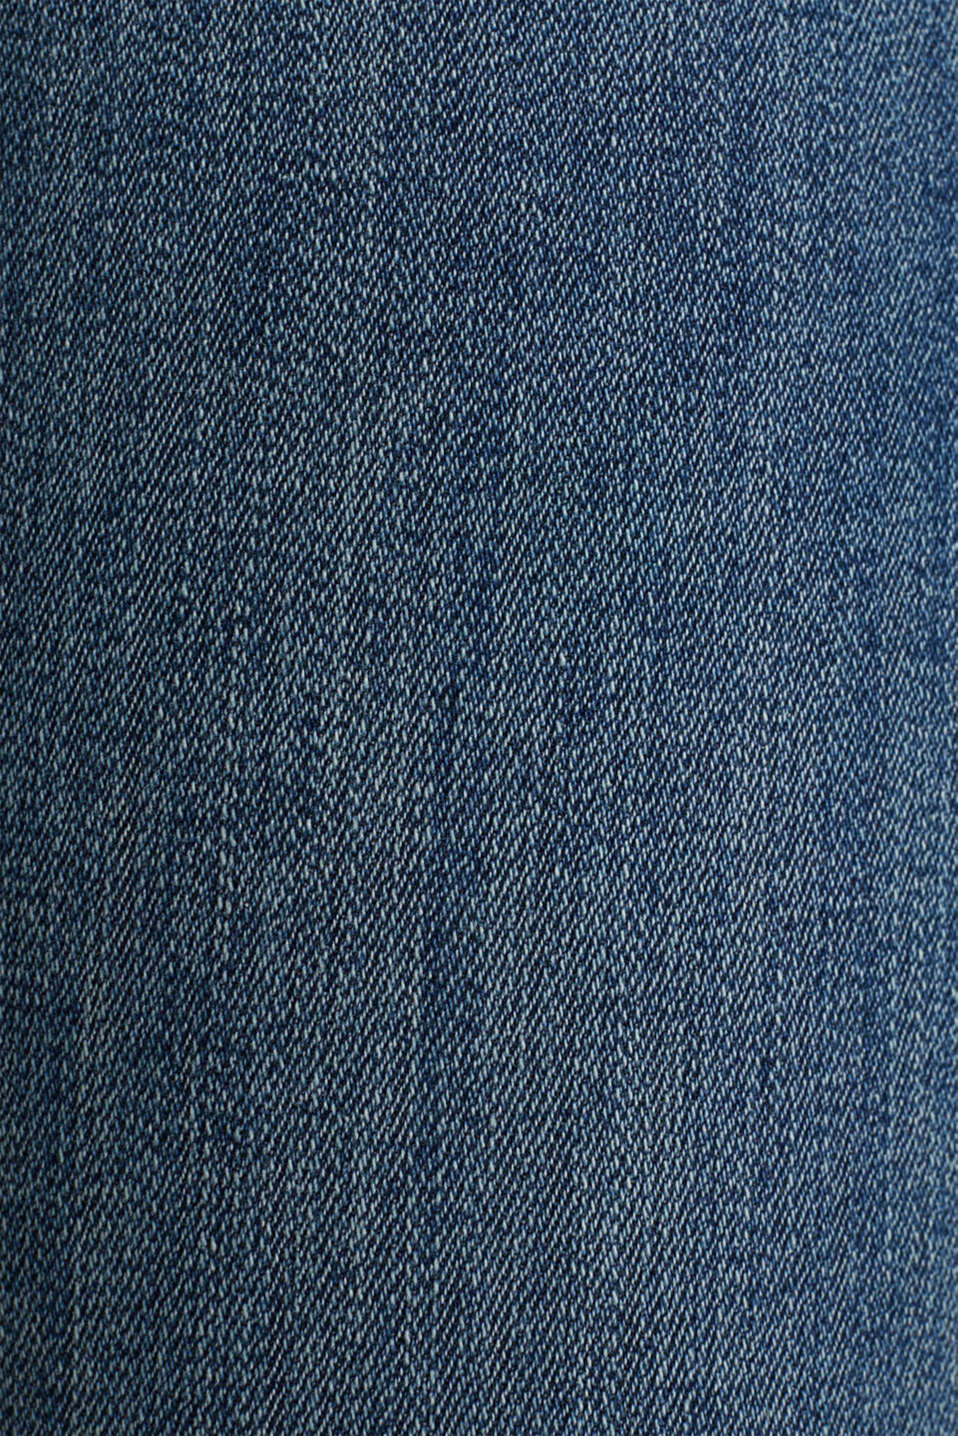 Ankle-length jeans with unneatened hems, BLUE DARK WASH, detail image number 4